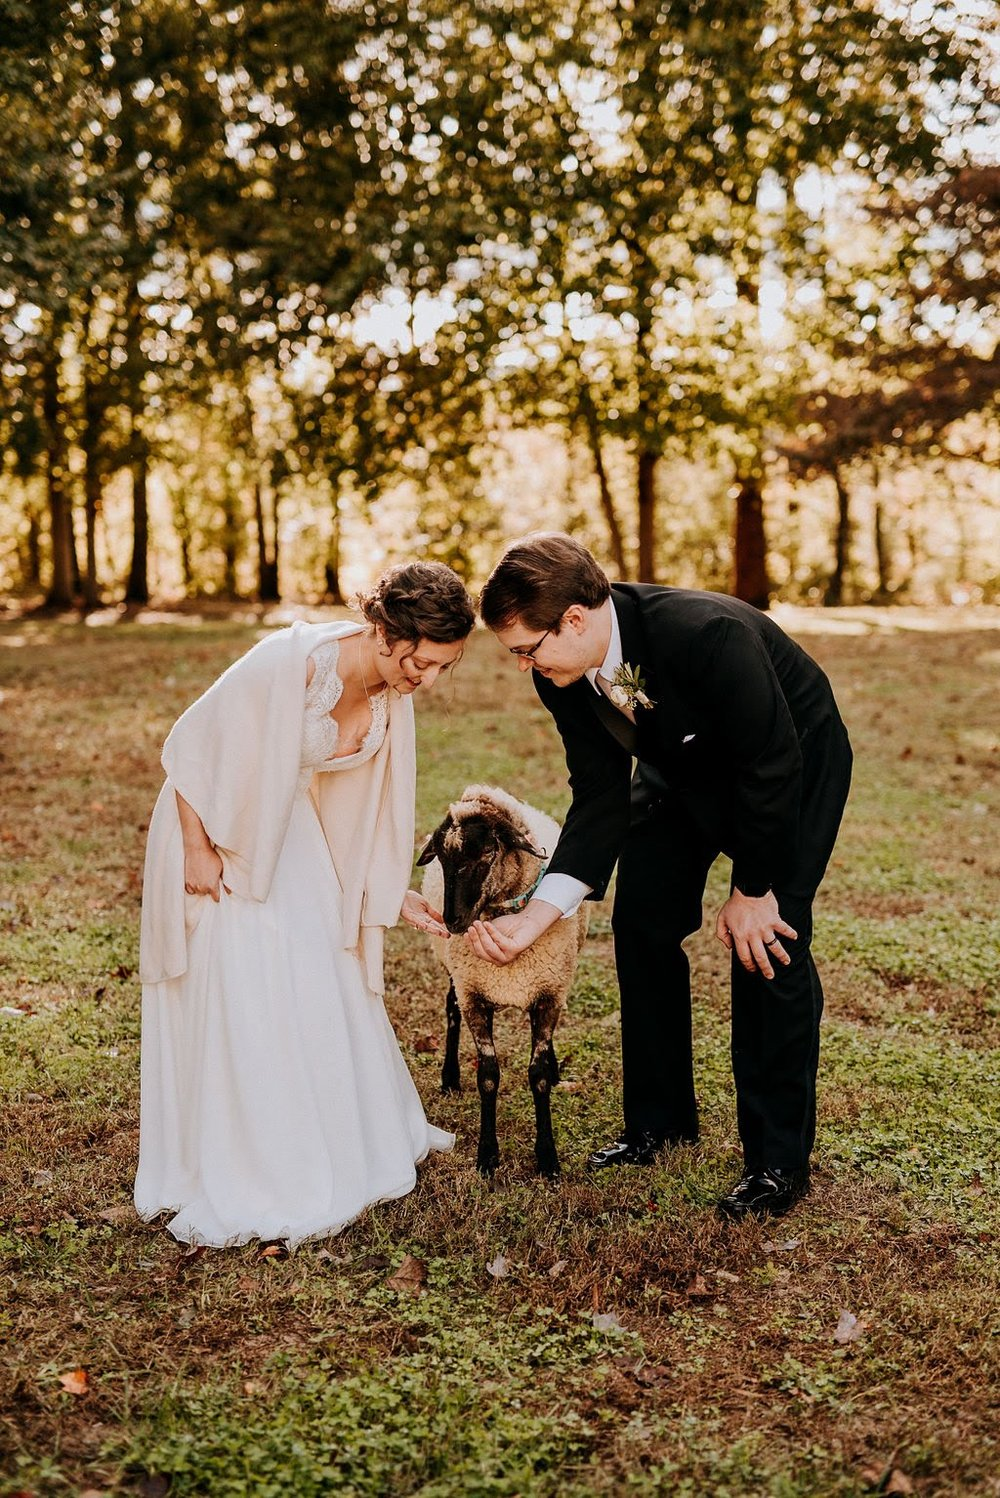 """""""I also cant stress enough how beautiful this place is, and the heritage livestock and other farm animals add to the charm. Highly recommend getting married here!"""" - -Kelly, Married 10.27.2018 